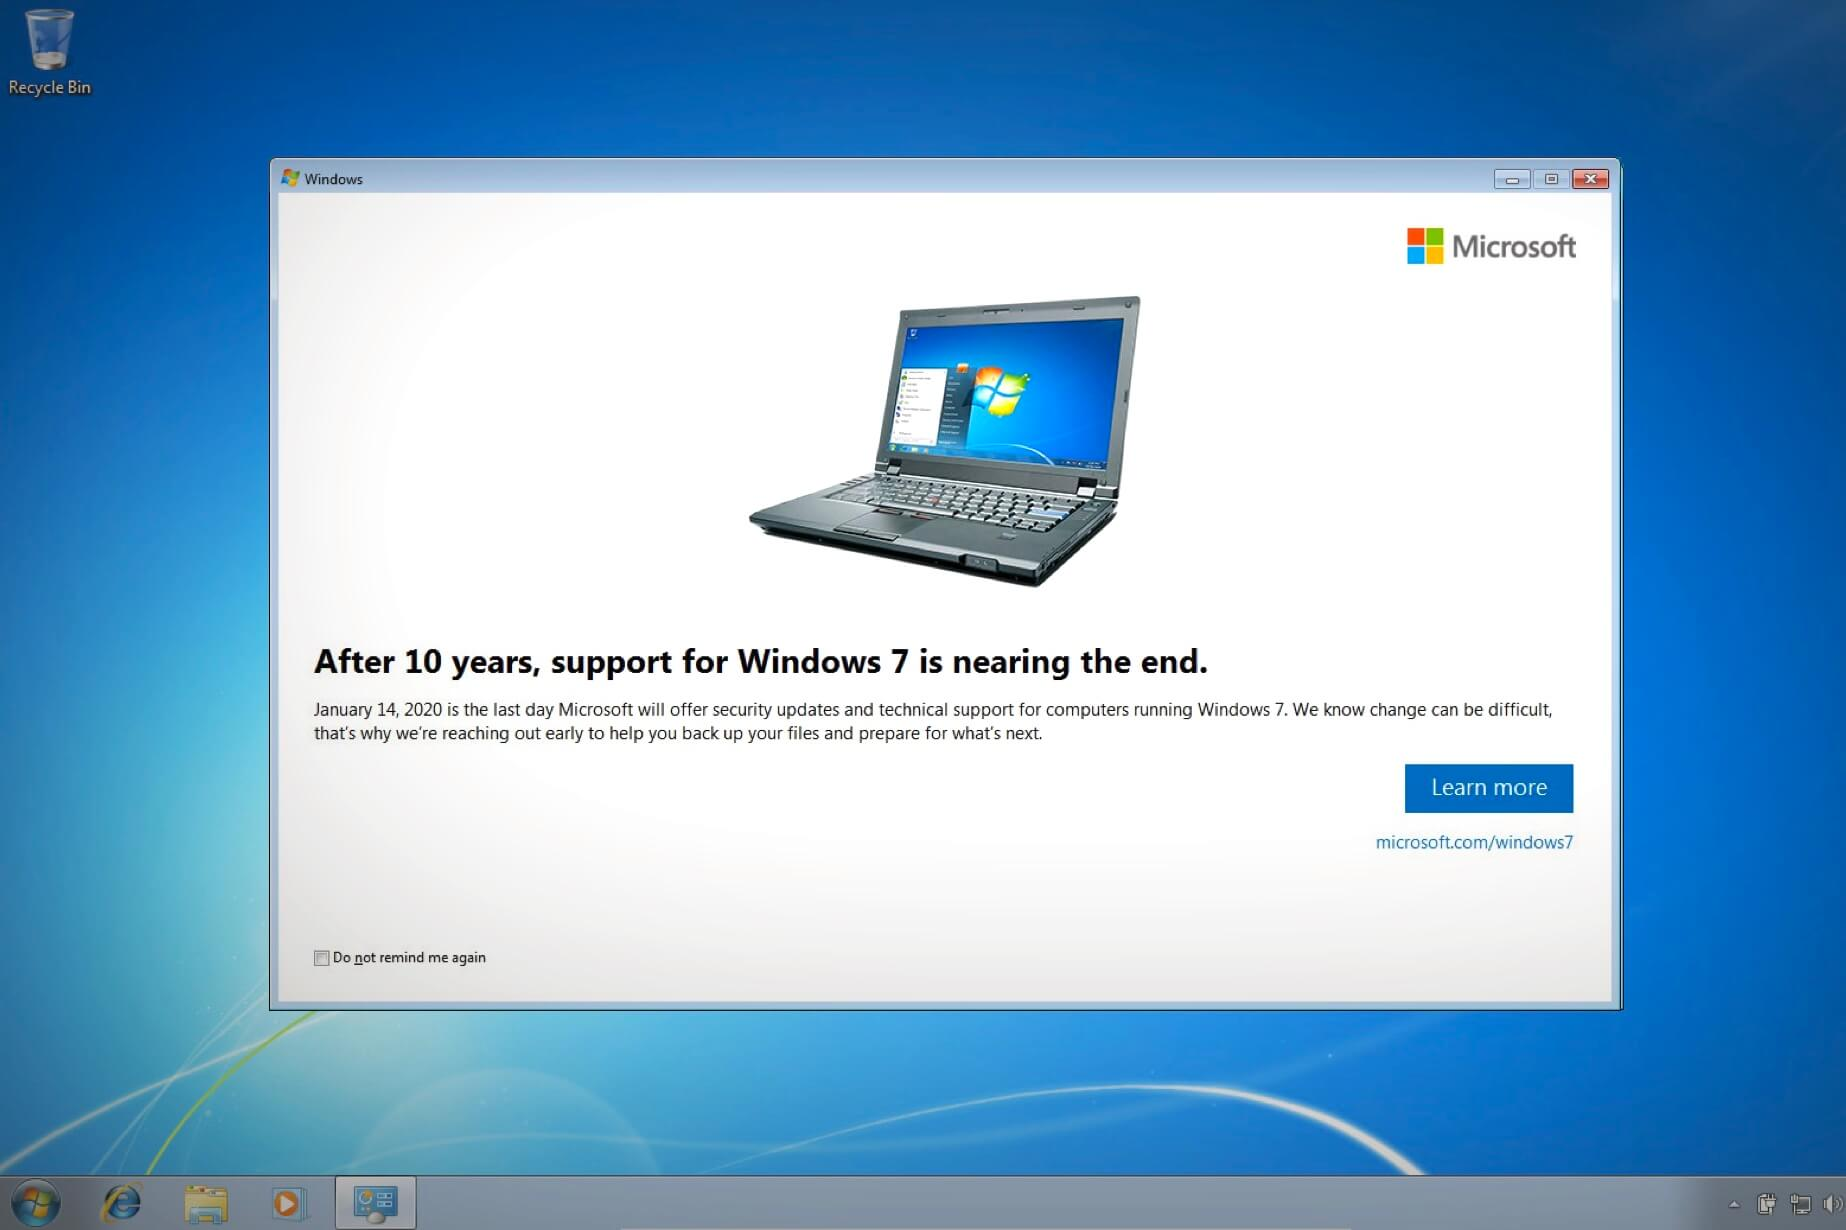 German government to pay Microsoft $886,000 after failing to upgrade from Windows 7 - TechSpot